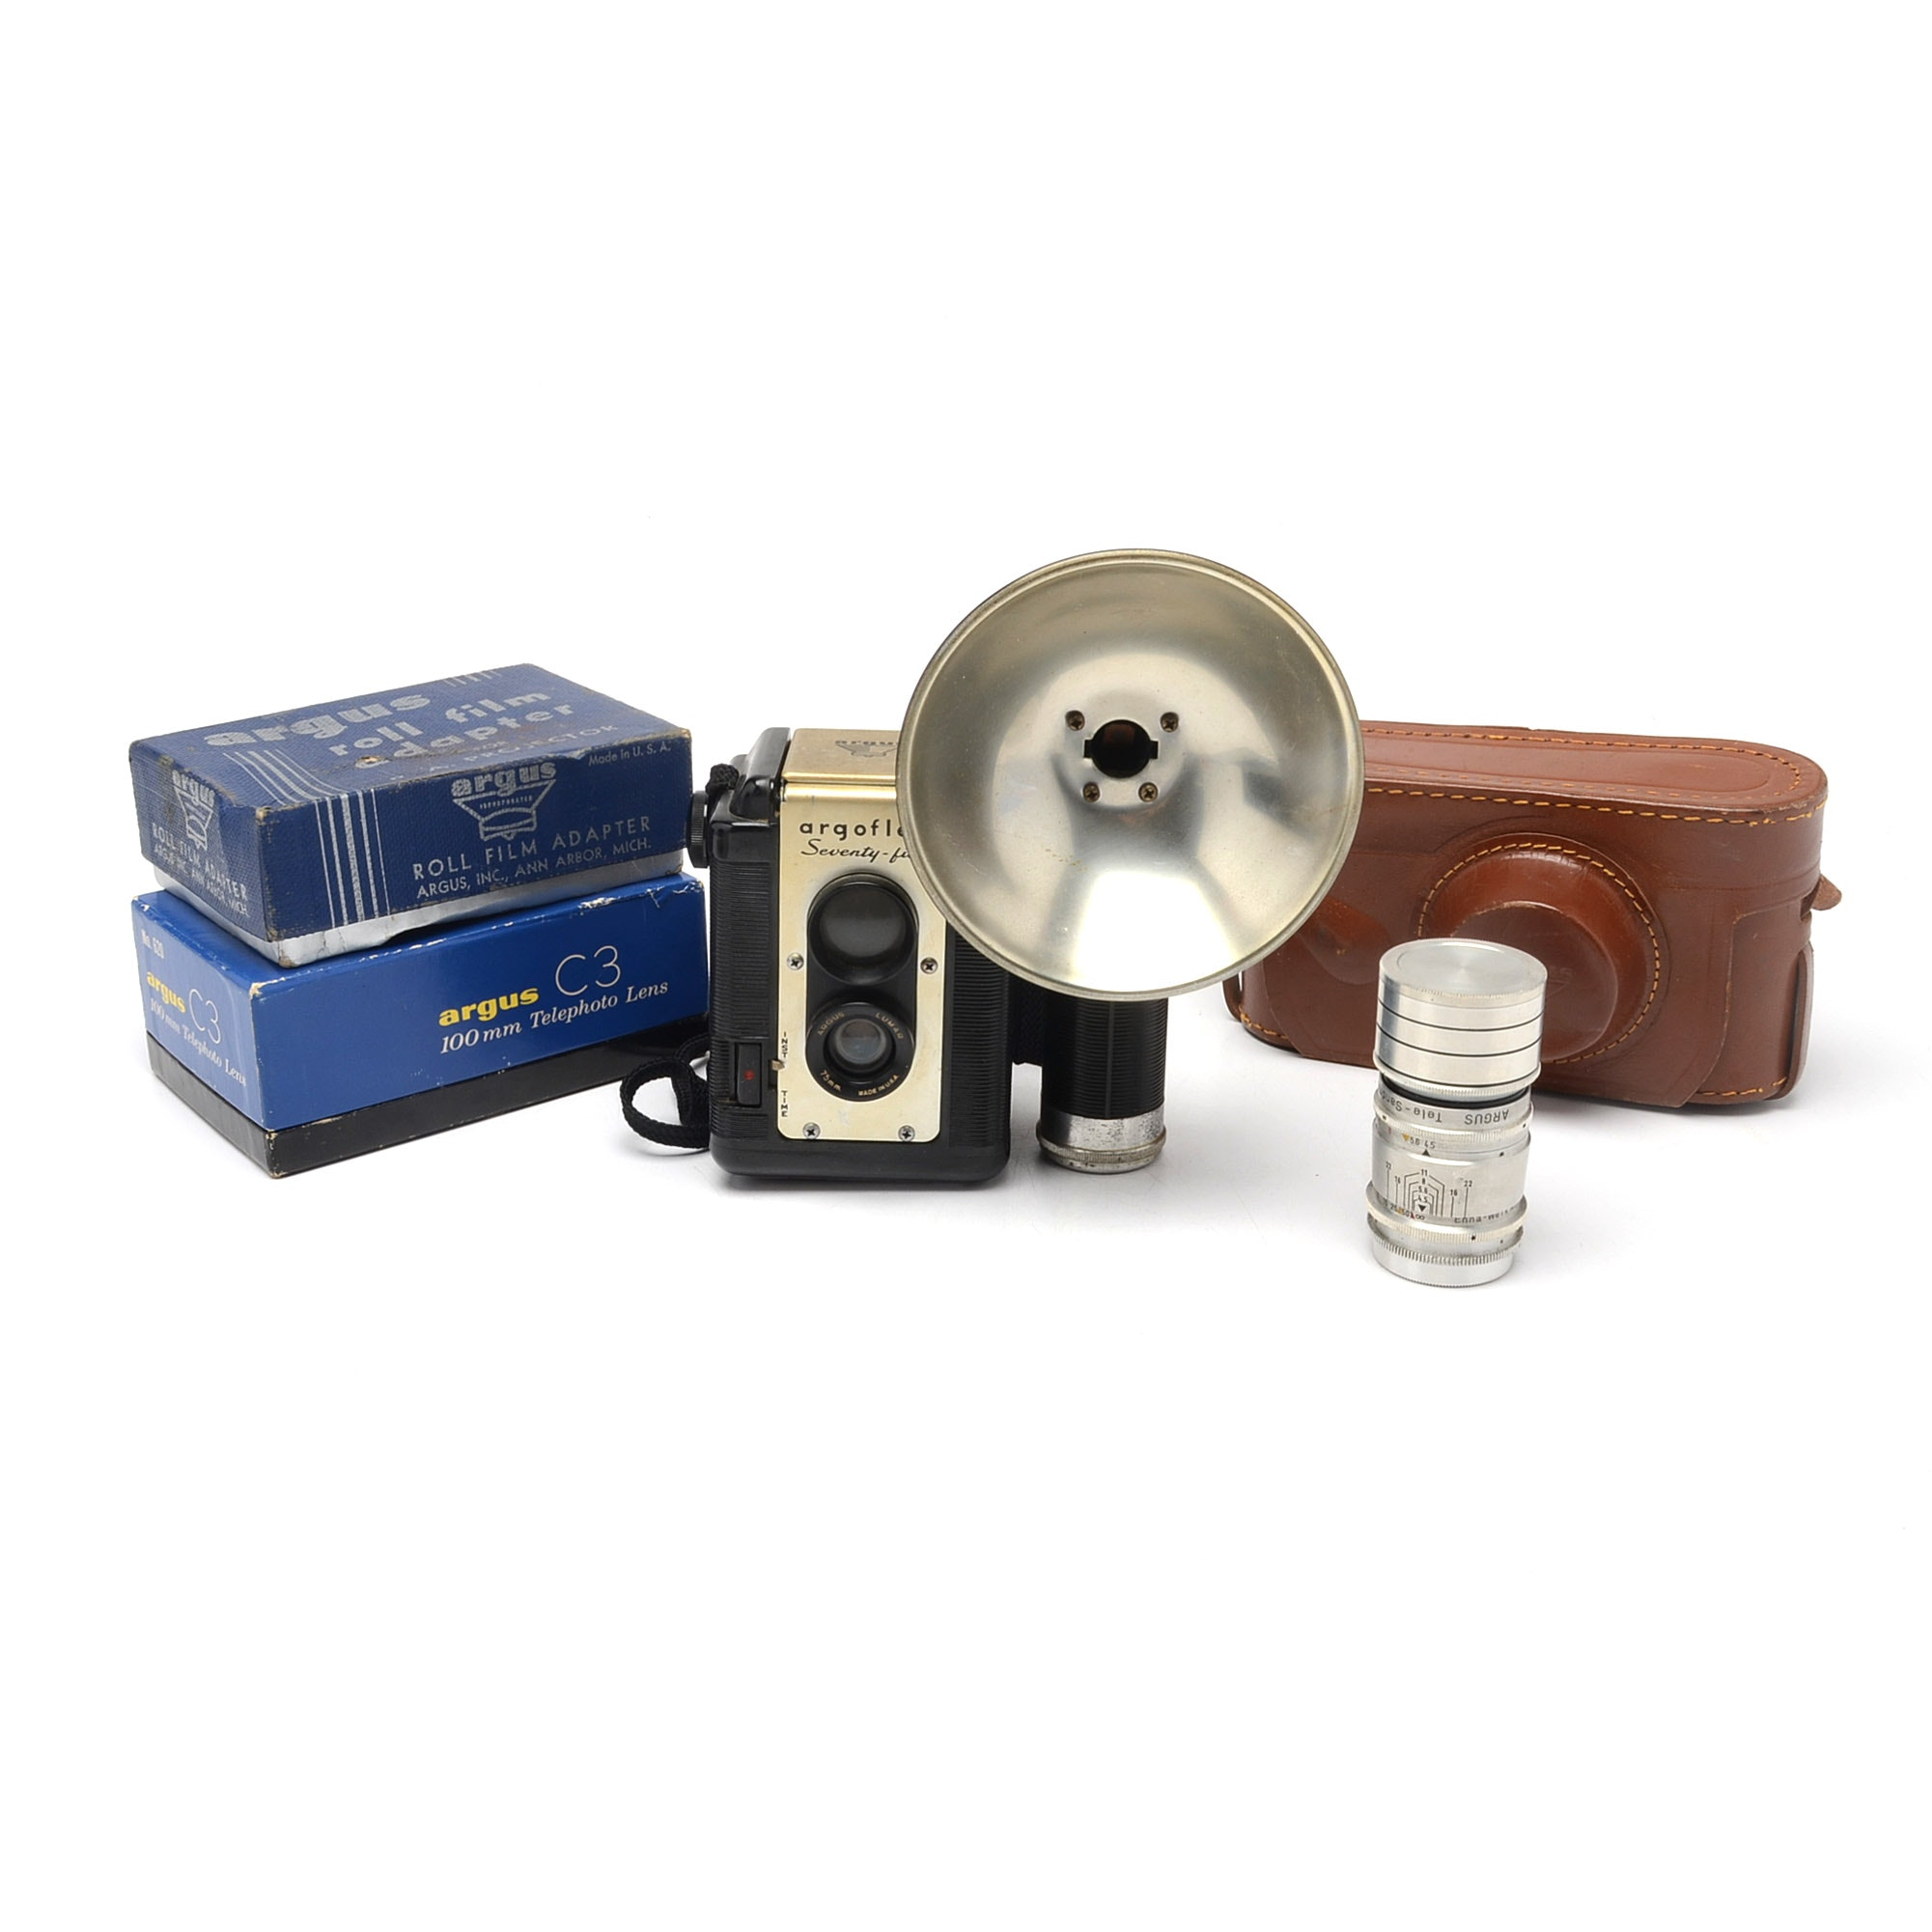 Assortment of Argus Cameras and Accessories